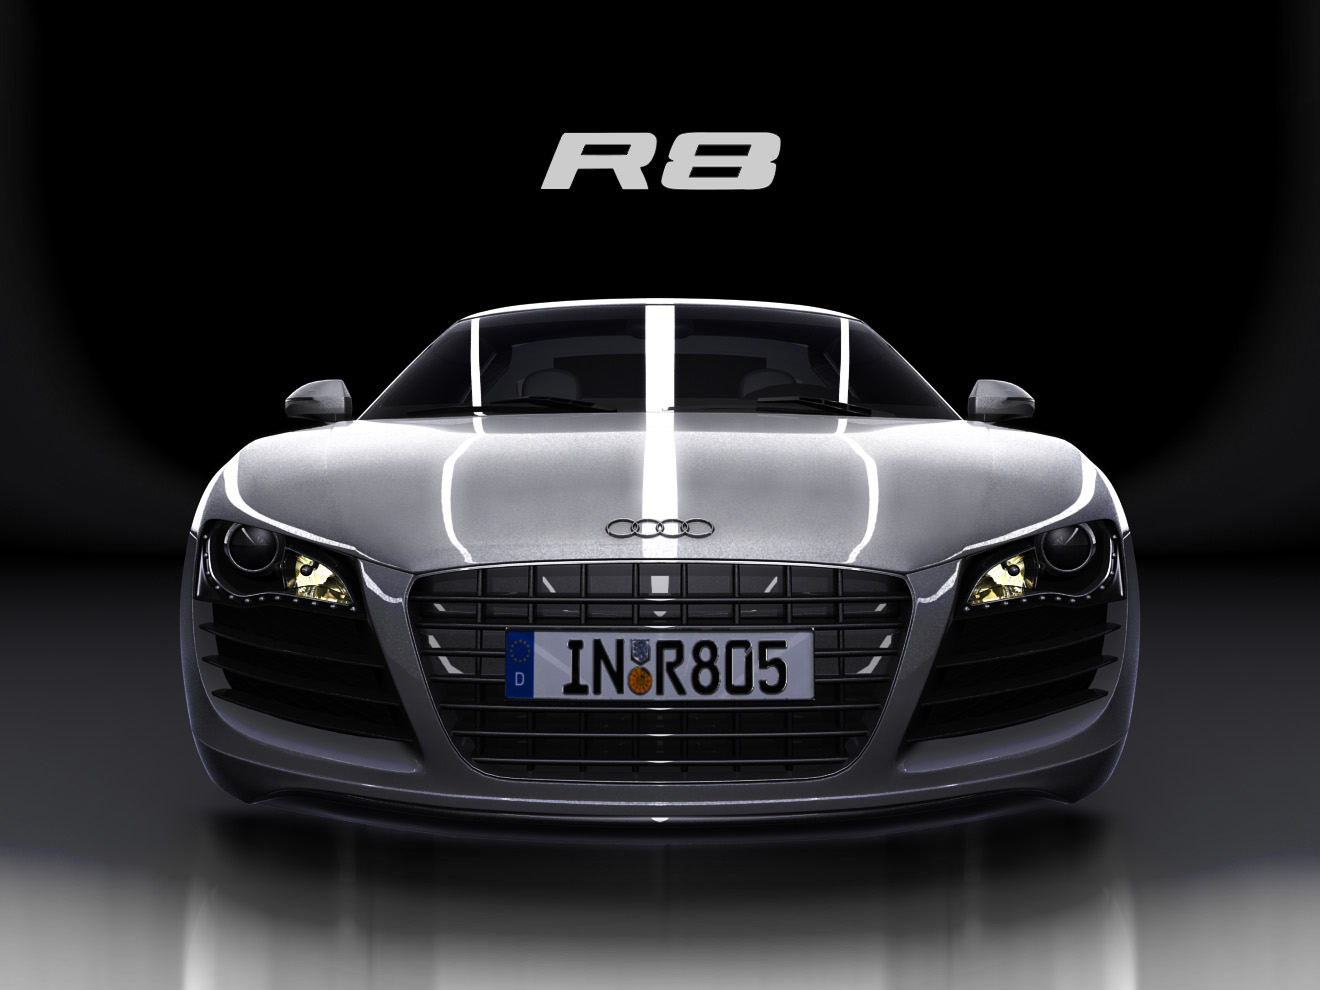 audi r8 hd wallpaper audi r8 hd wallpaper audi r8 hd wallpaper 1320x990